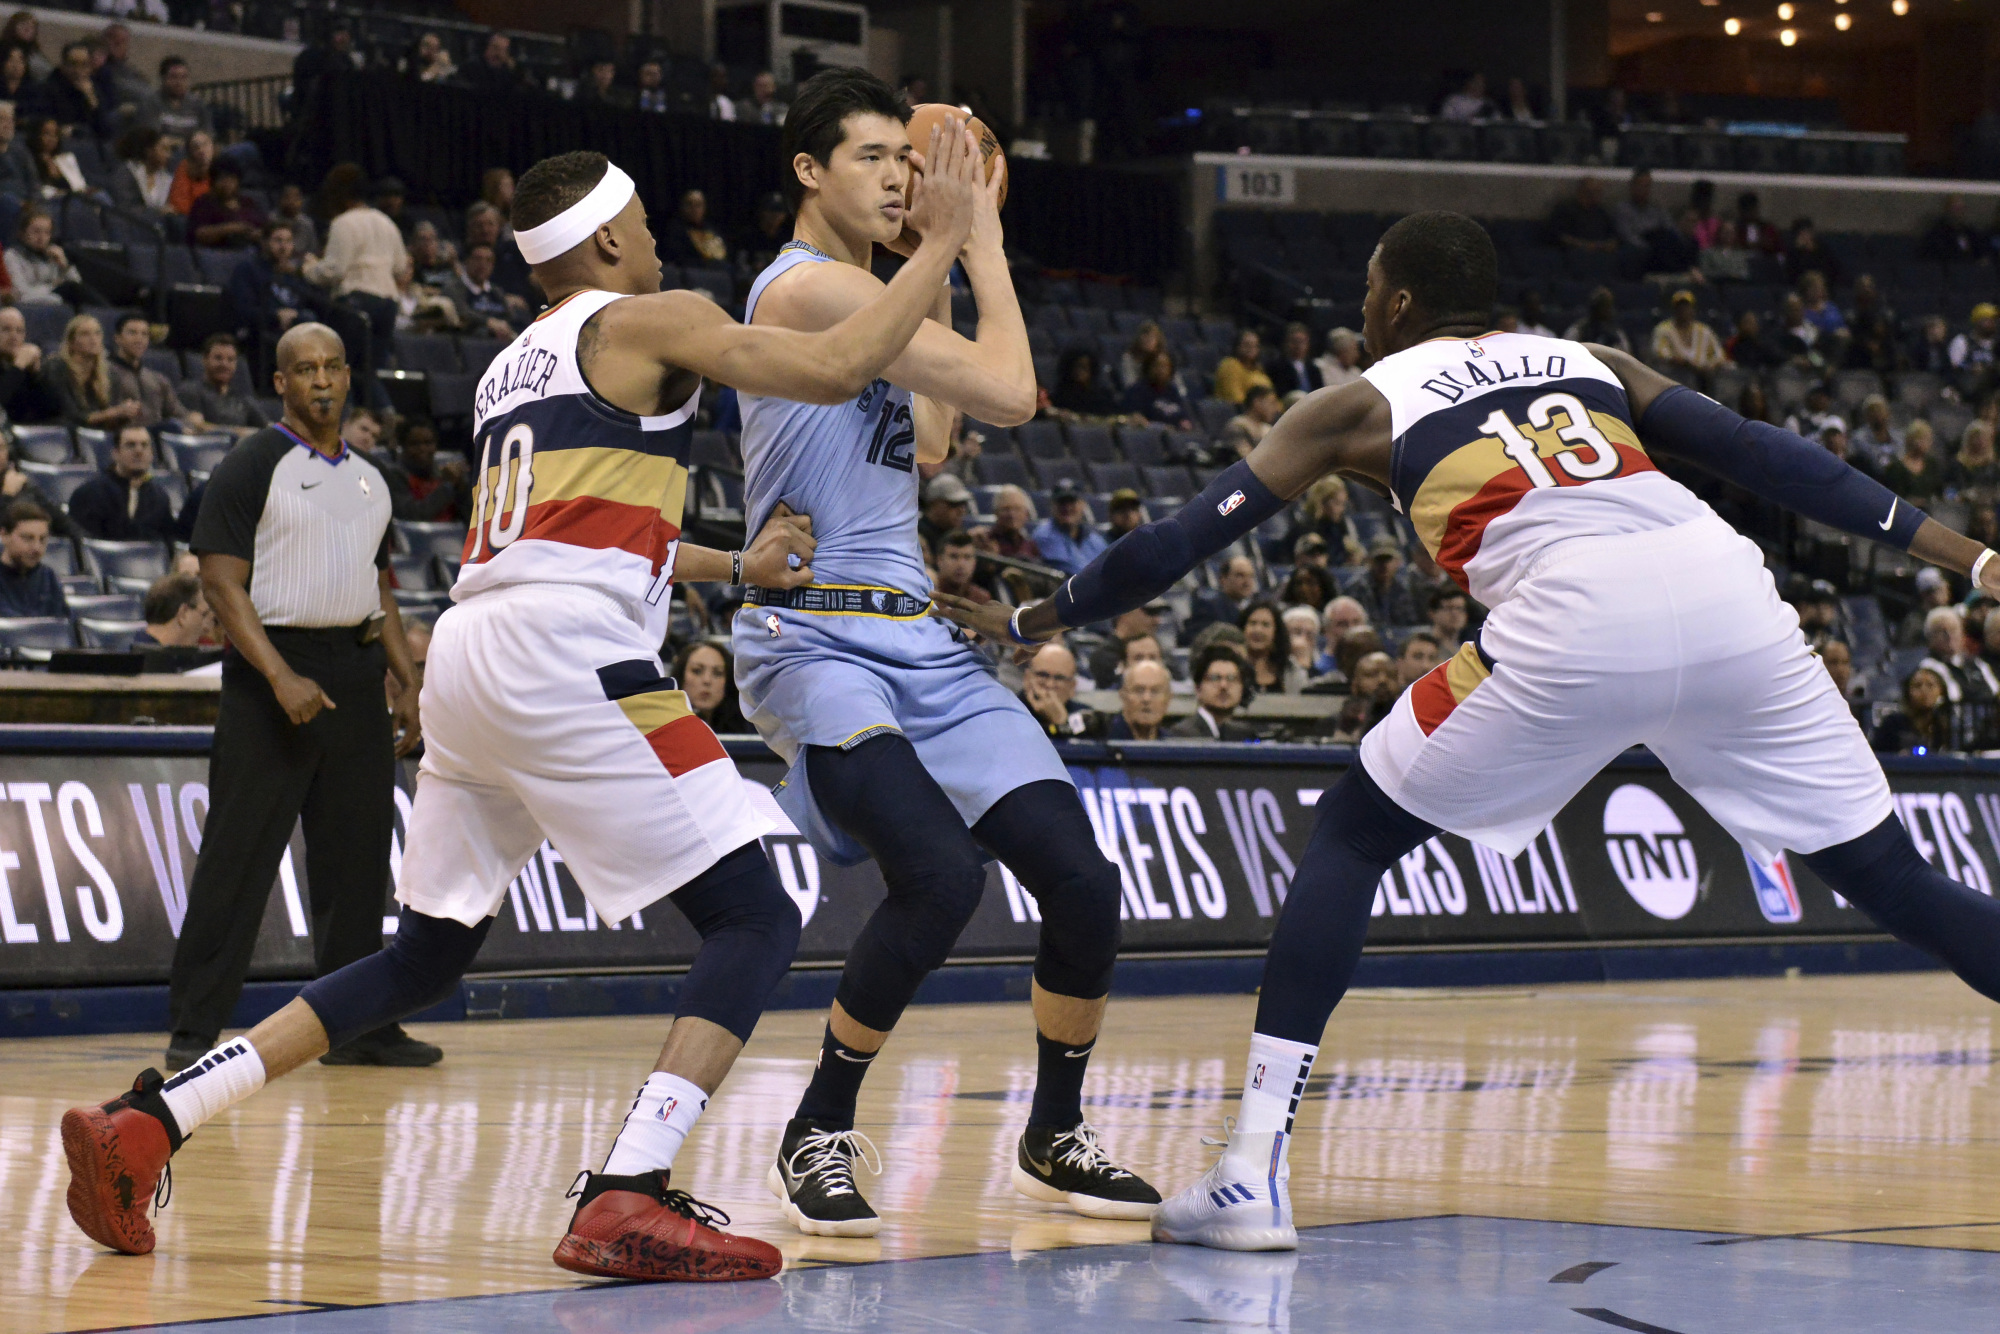 Rookie Yuta Watanabe, who is splitting time between the Memphis Grizzlies and the NBA G League's Memphis Hustle, is seen controlling the ball in the Grizzlies' game on Jan. 21 against the visiting New Orleans Pelicans. | AP